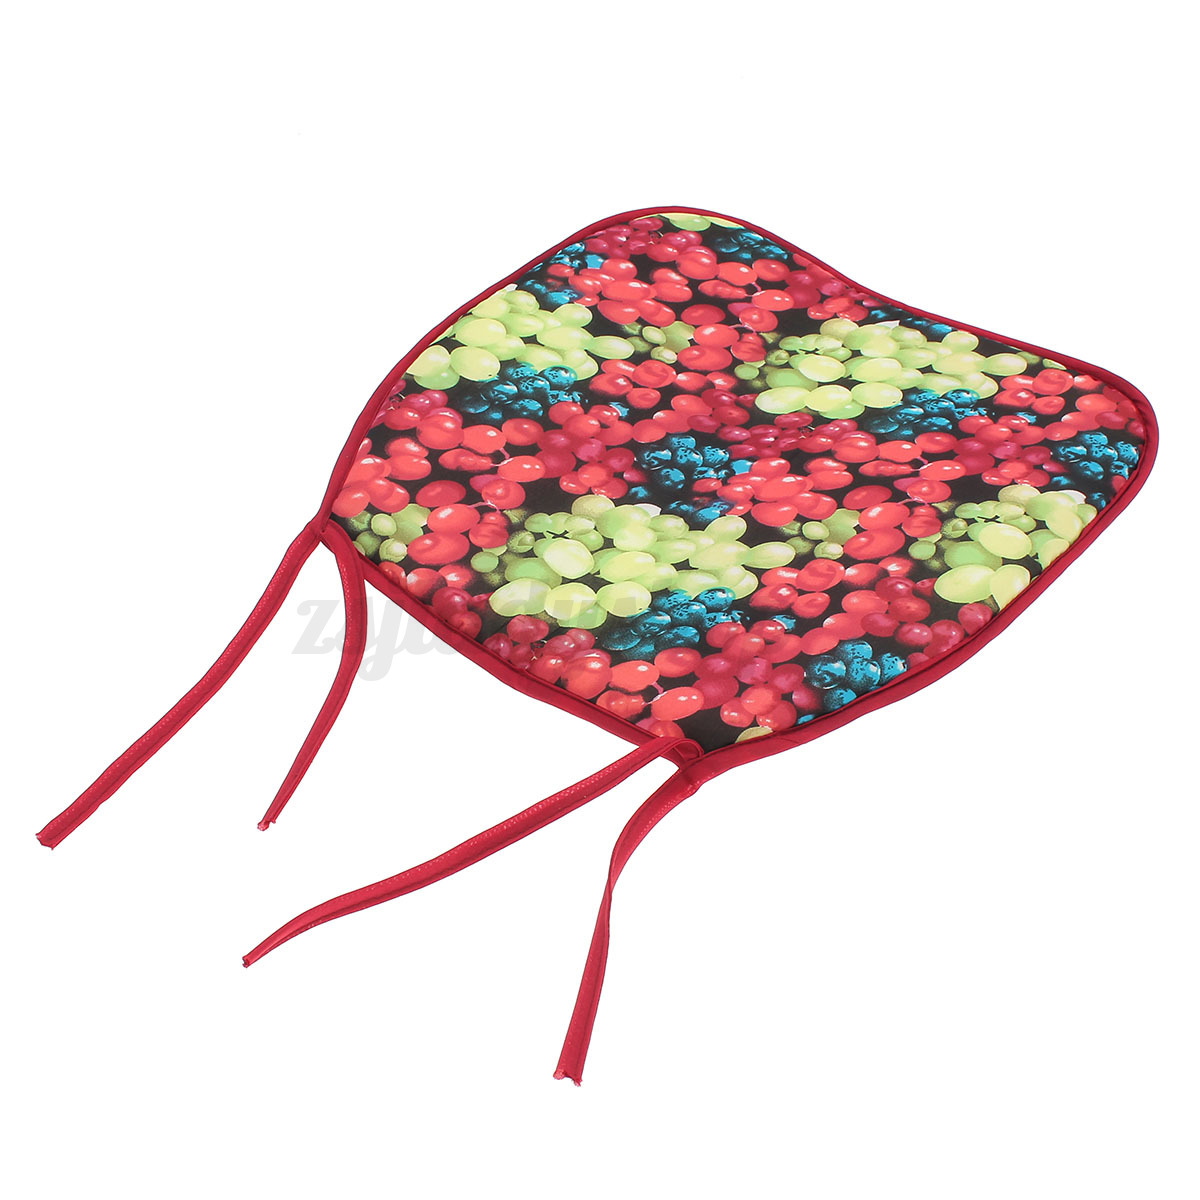 Soft Chair Cushion Seat Pads Removable Cover Dining Home  : B9828537A6C69E9B97078C97908FD6539363B5539B63539BD29E3329C89ED29C66C7C7D22EC6C956CDD223439D08CACD9AC6669CCDC89F13A0CB from www.ebay.com.au size 1200 x 1200 jpeg 226kB